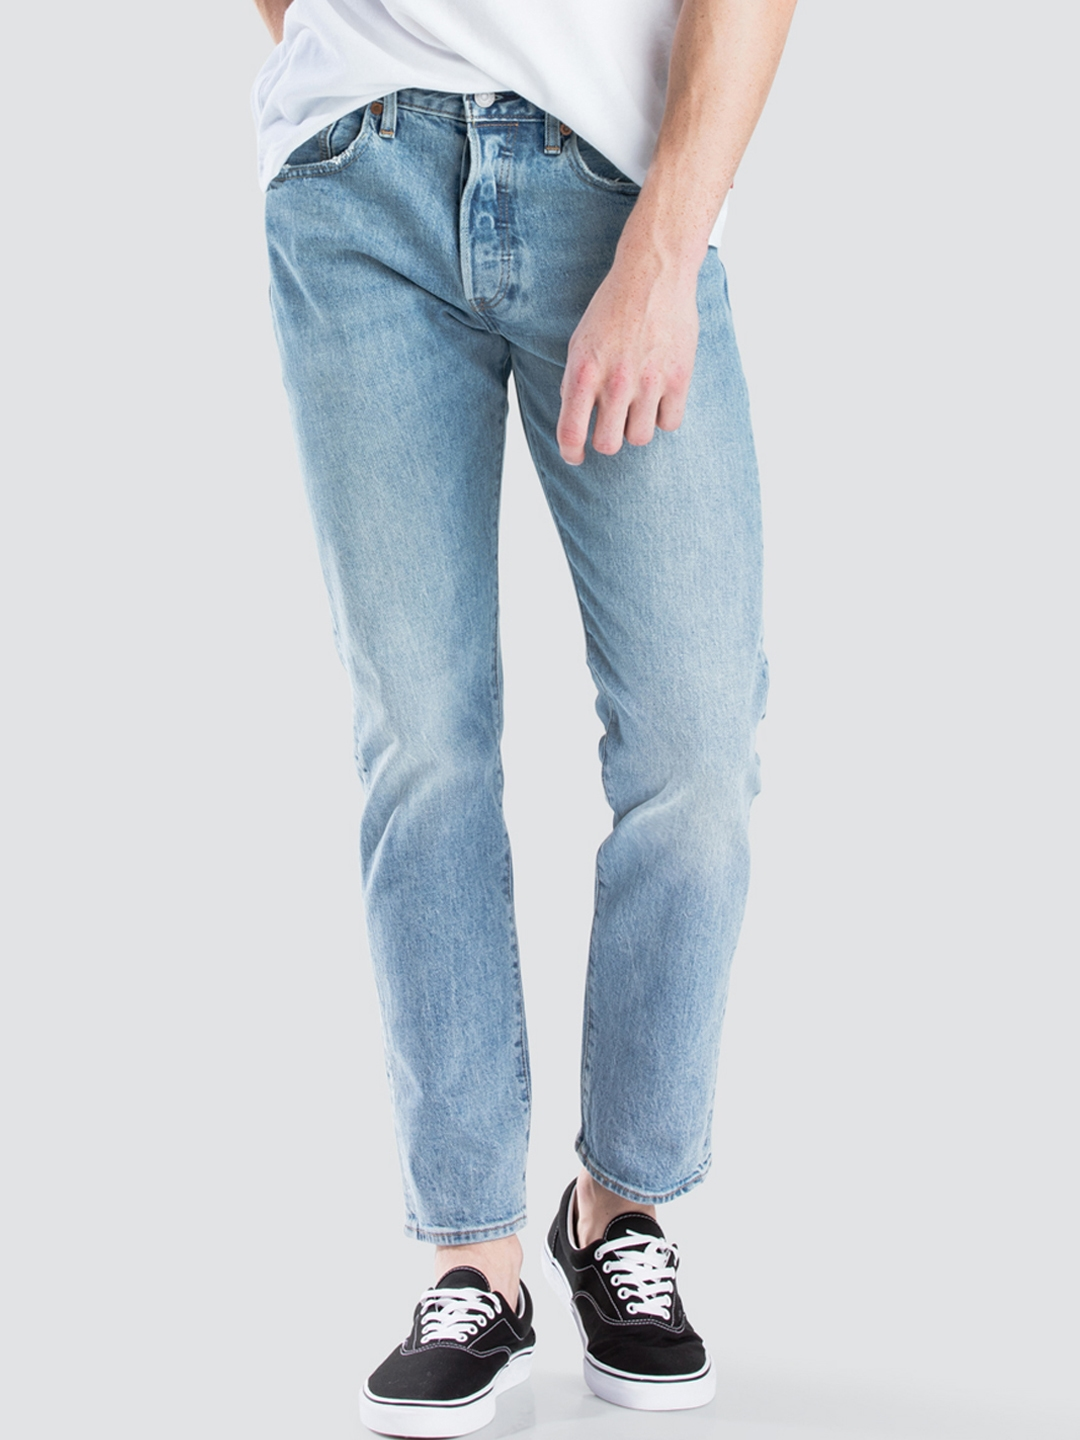 9bc8a64c97fd Levis x Justin Timberlake Men Blue Tapered Fit Mid-Rise Clean Look  Stretchable Jeans 501